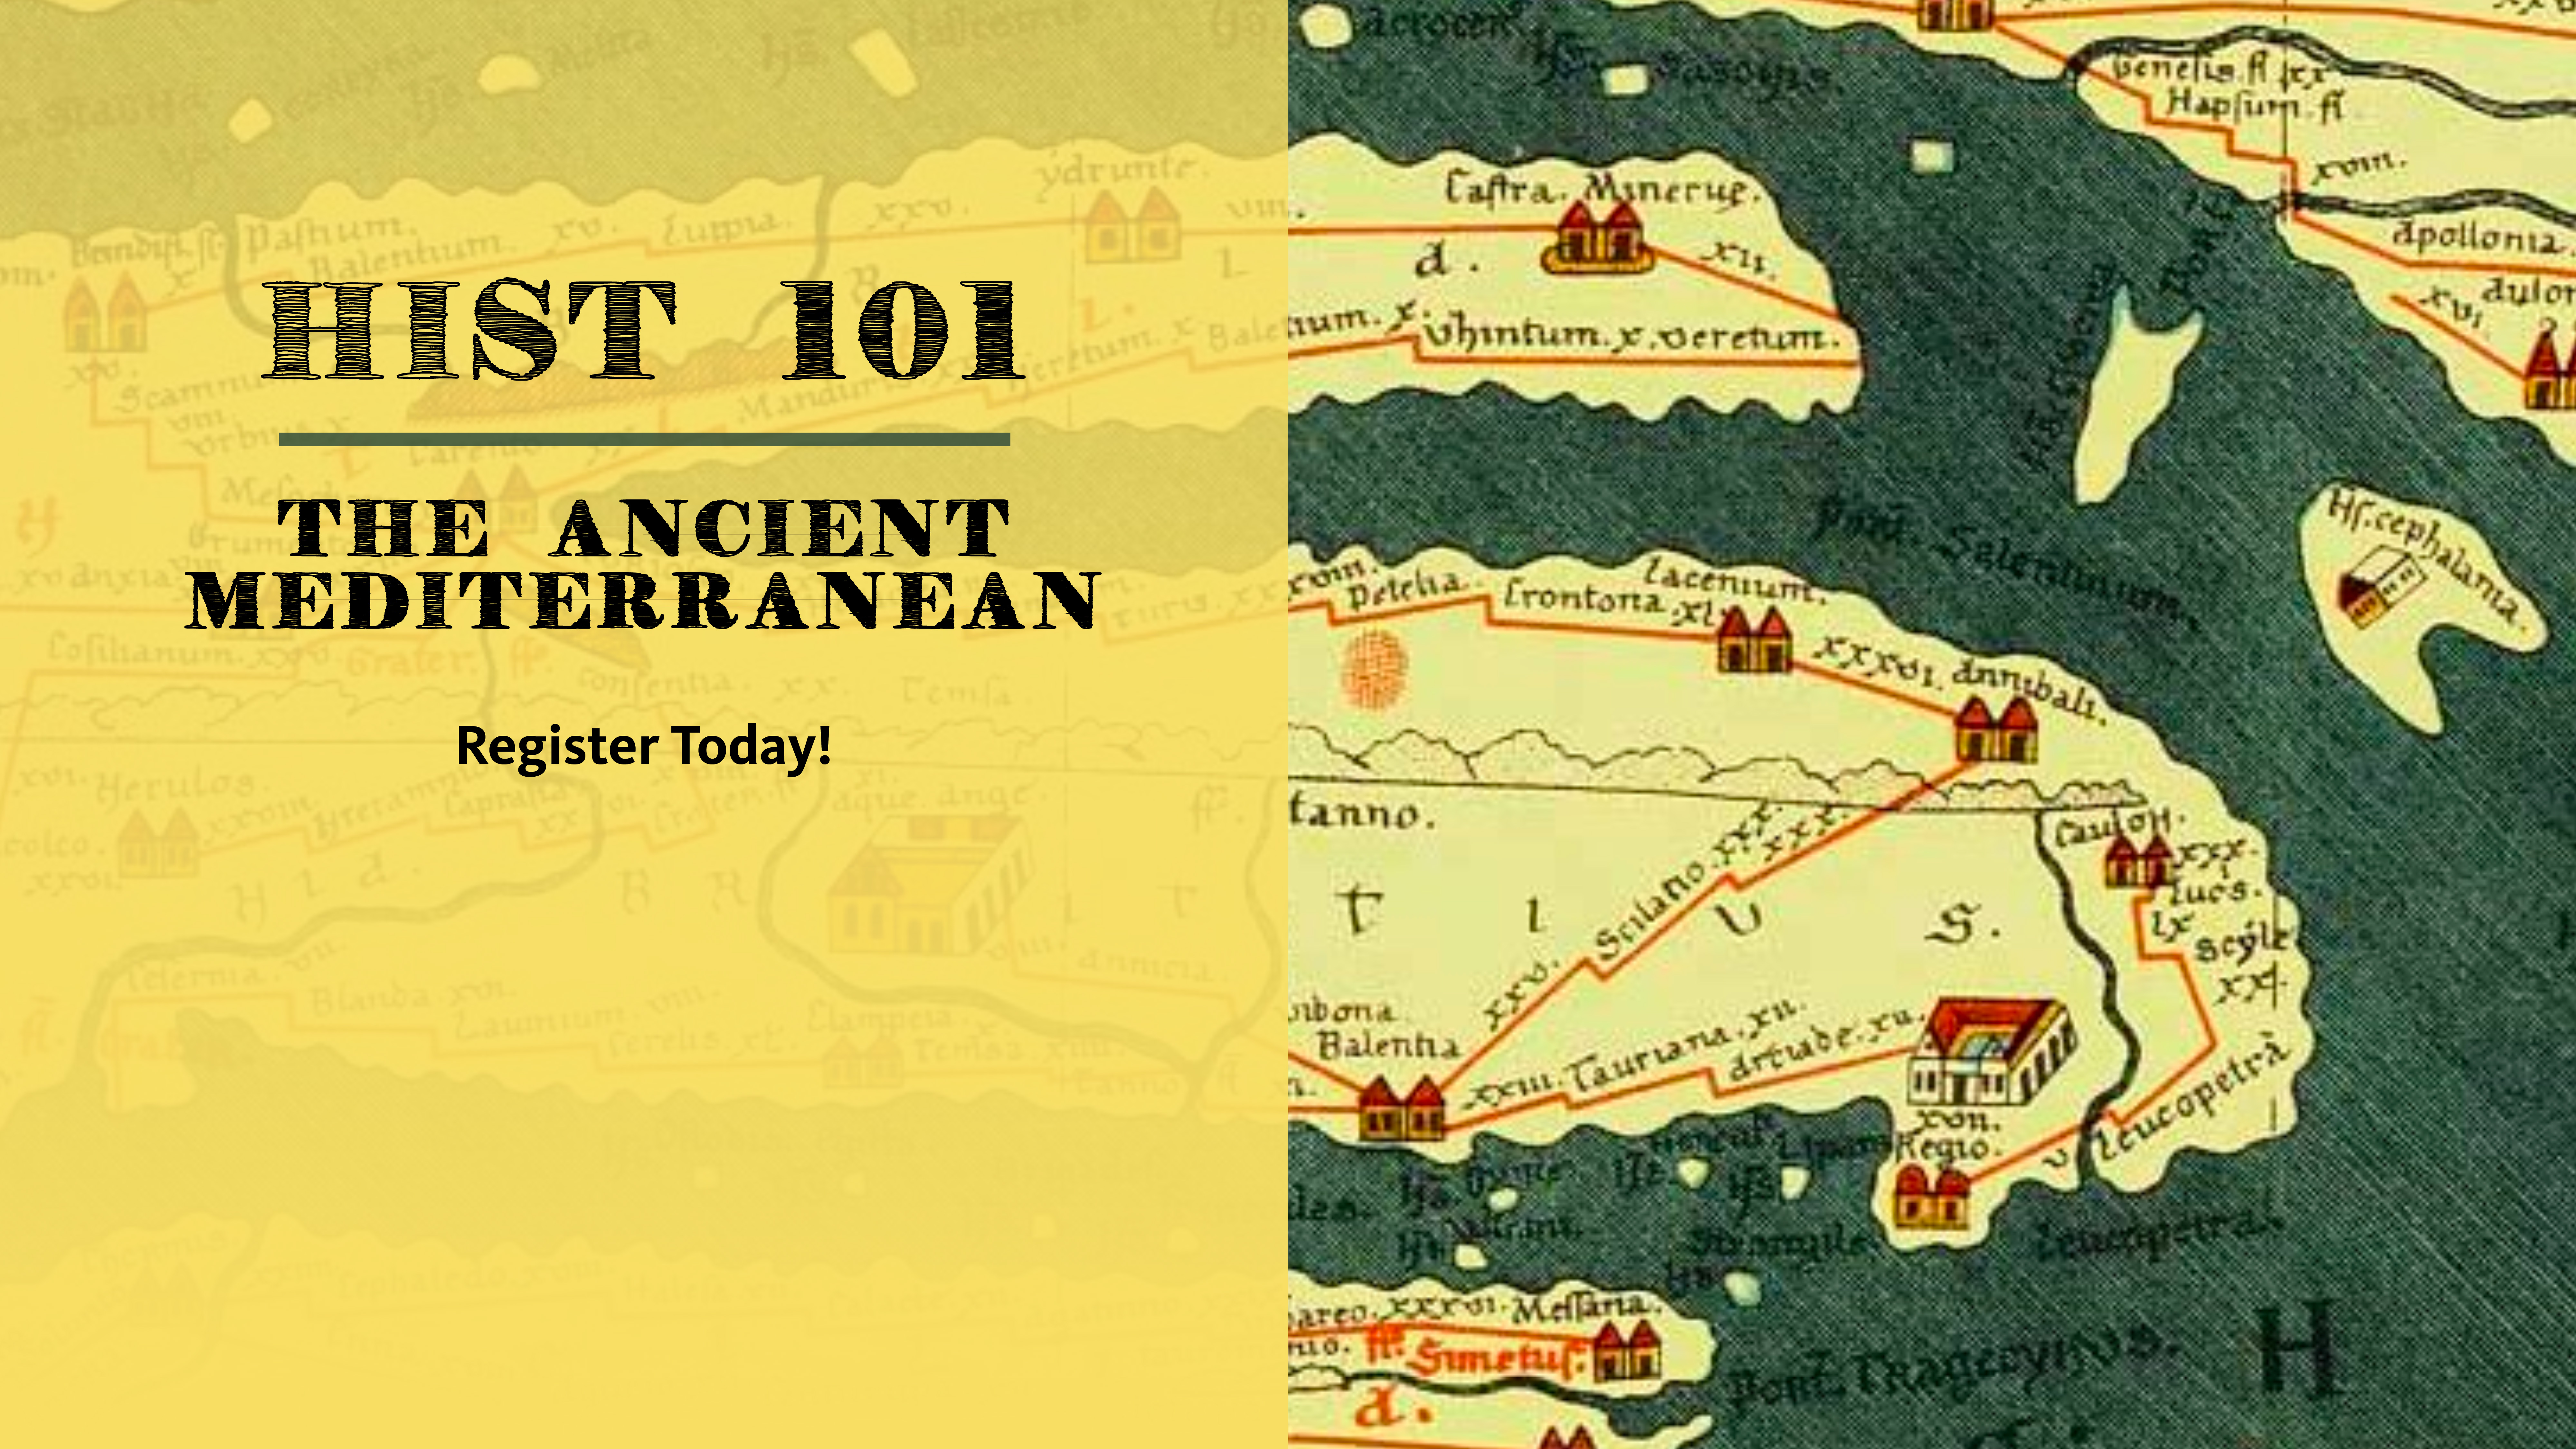 HIST 101: The Ancient Mediterranean | Department of History